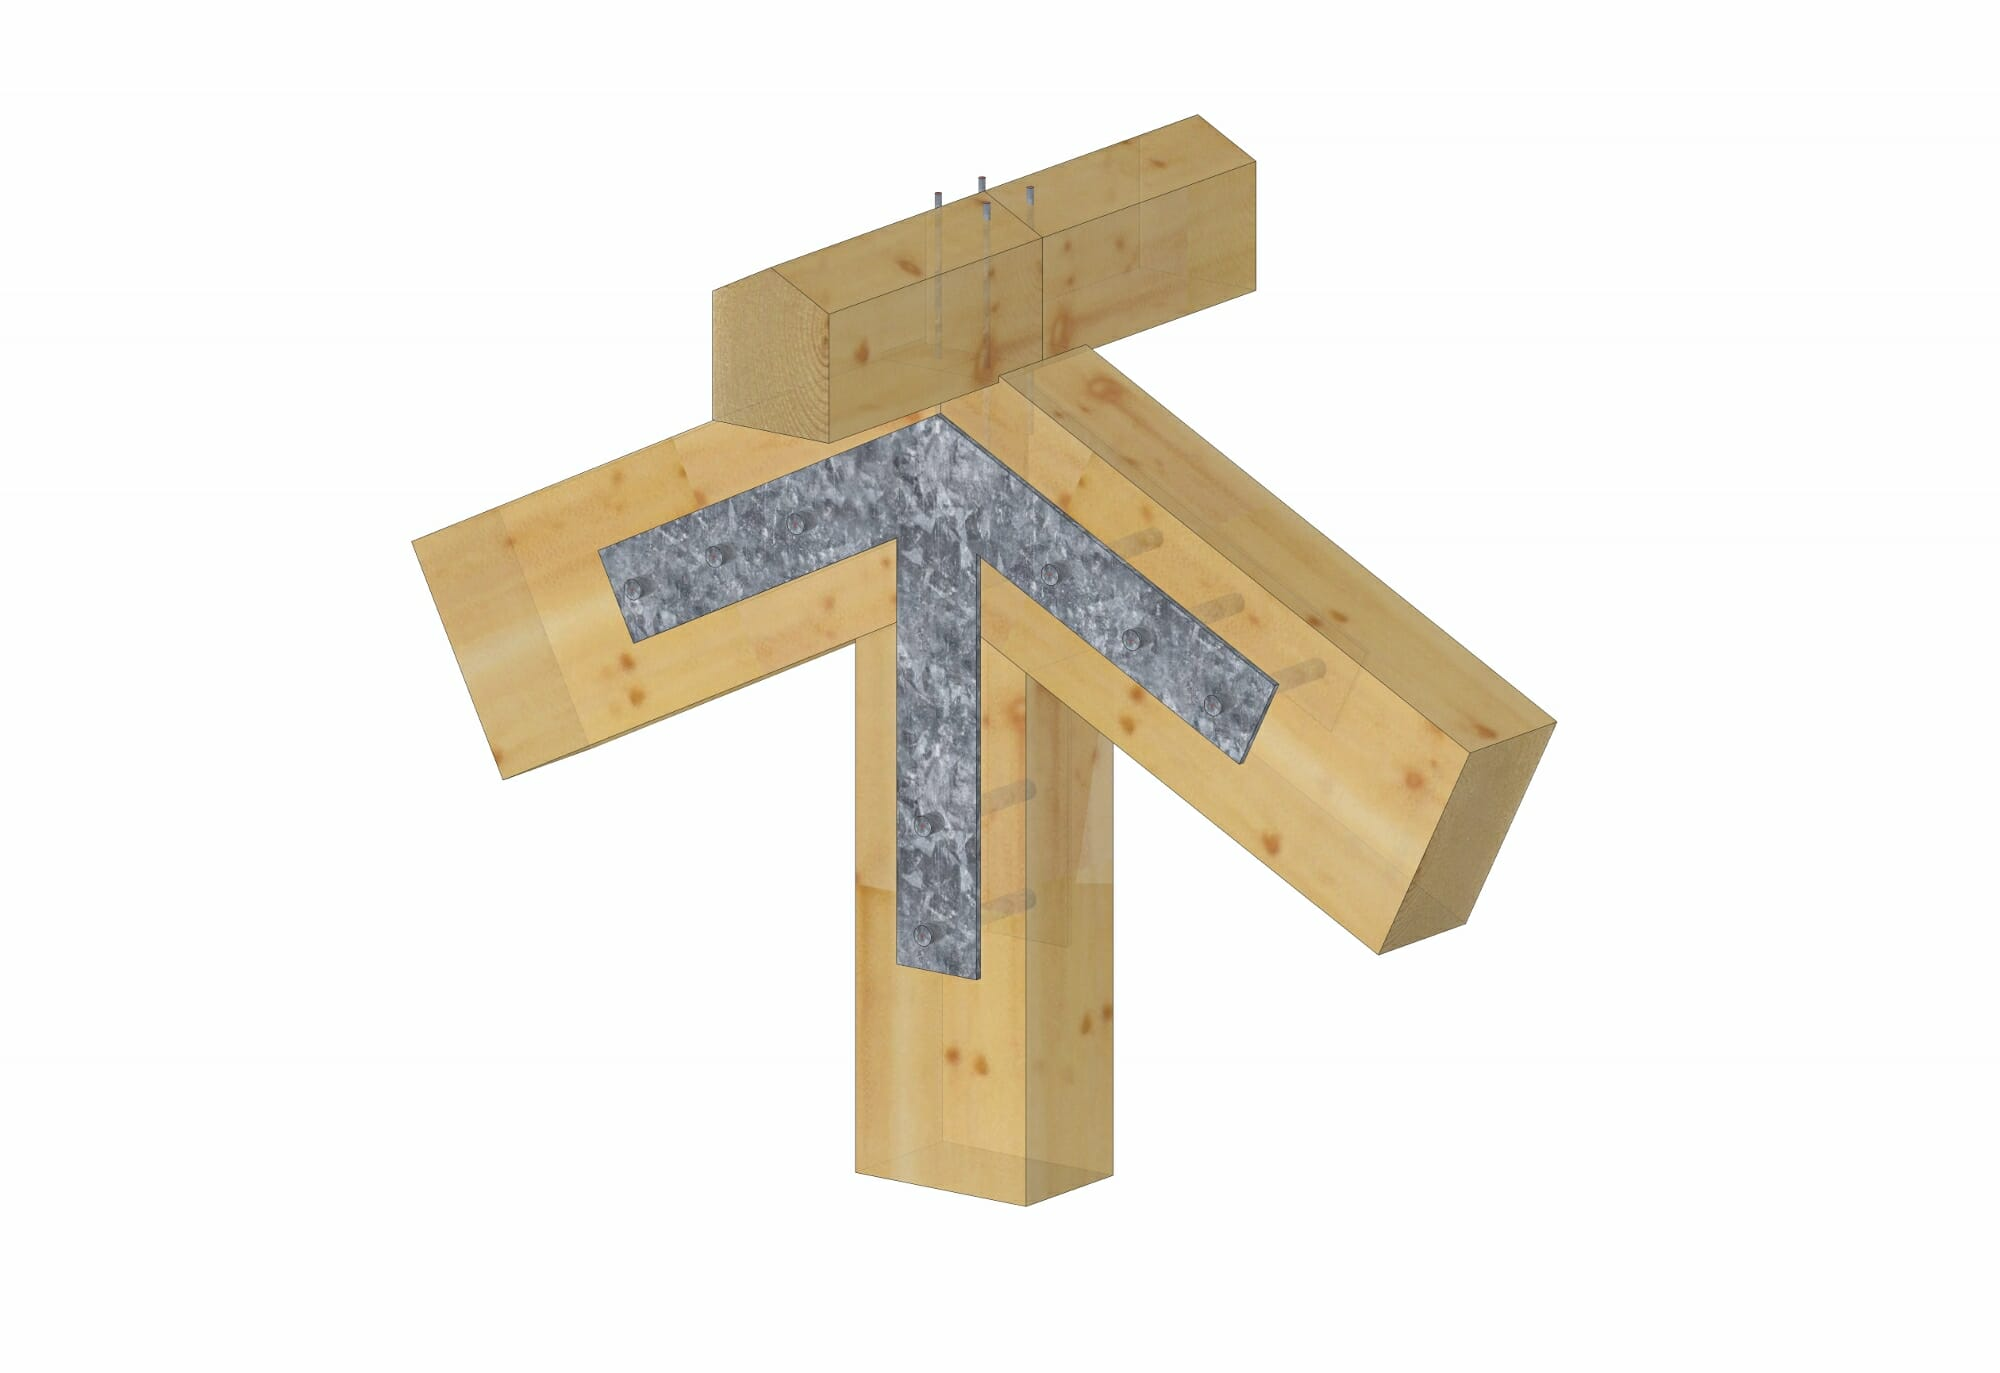 Steel Connections for Timber Frames | Steel Gusset Plates